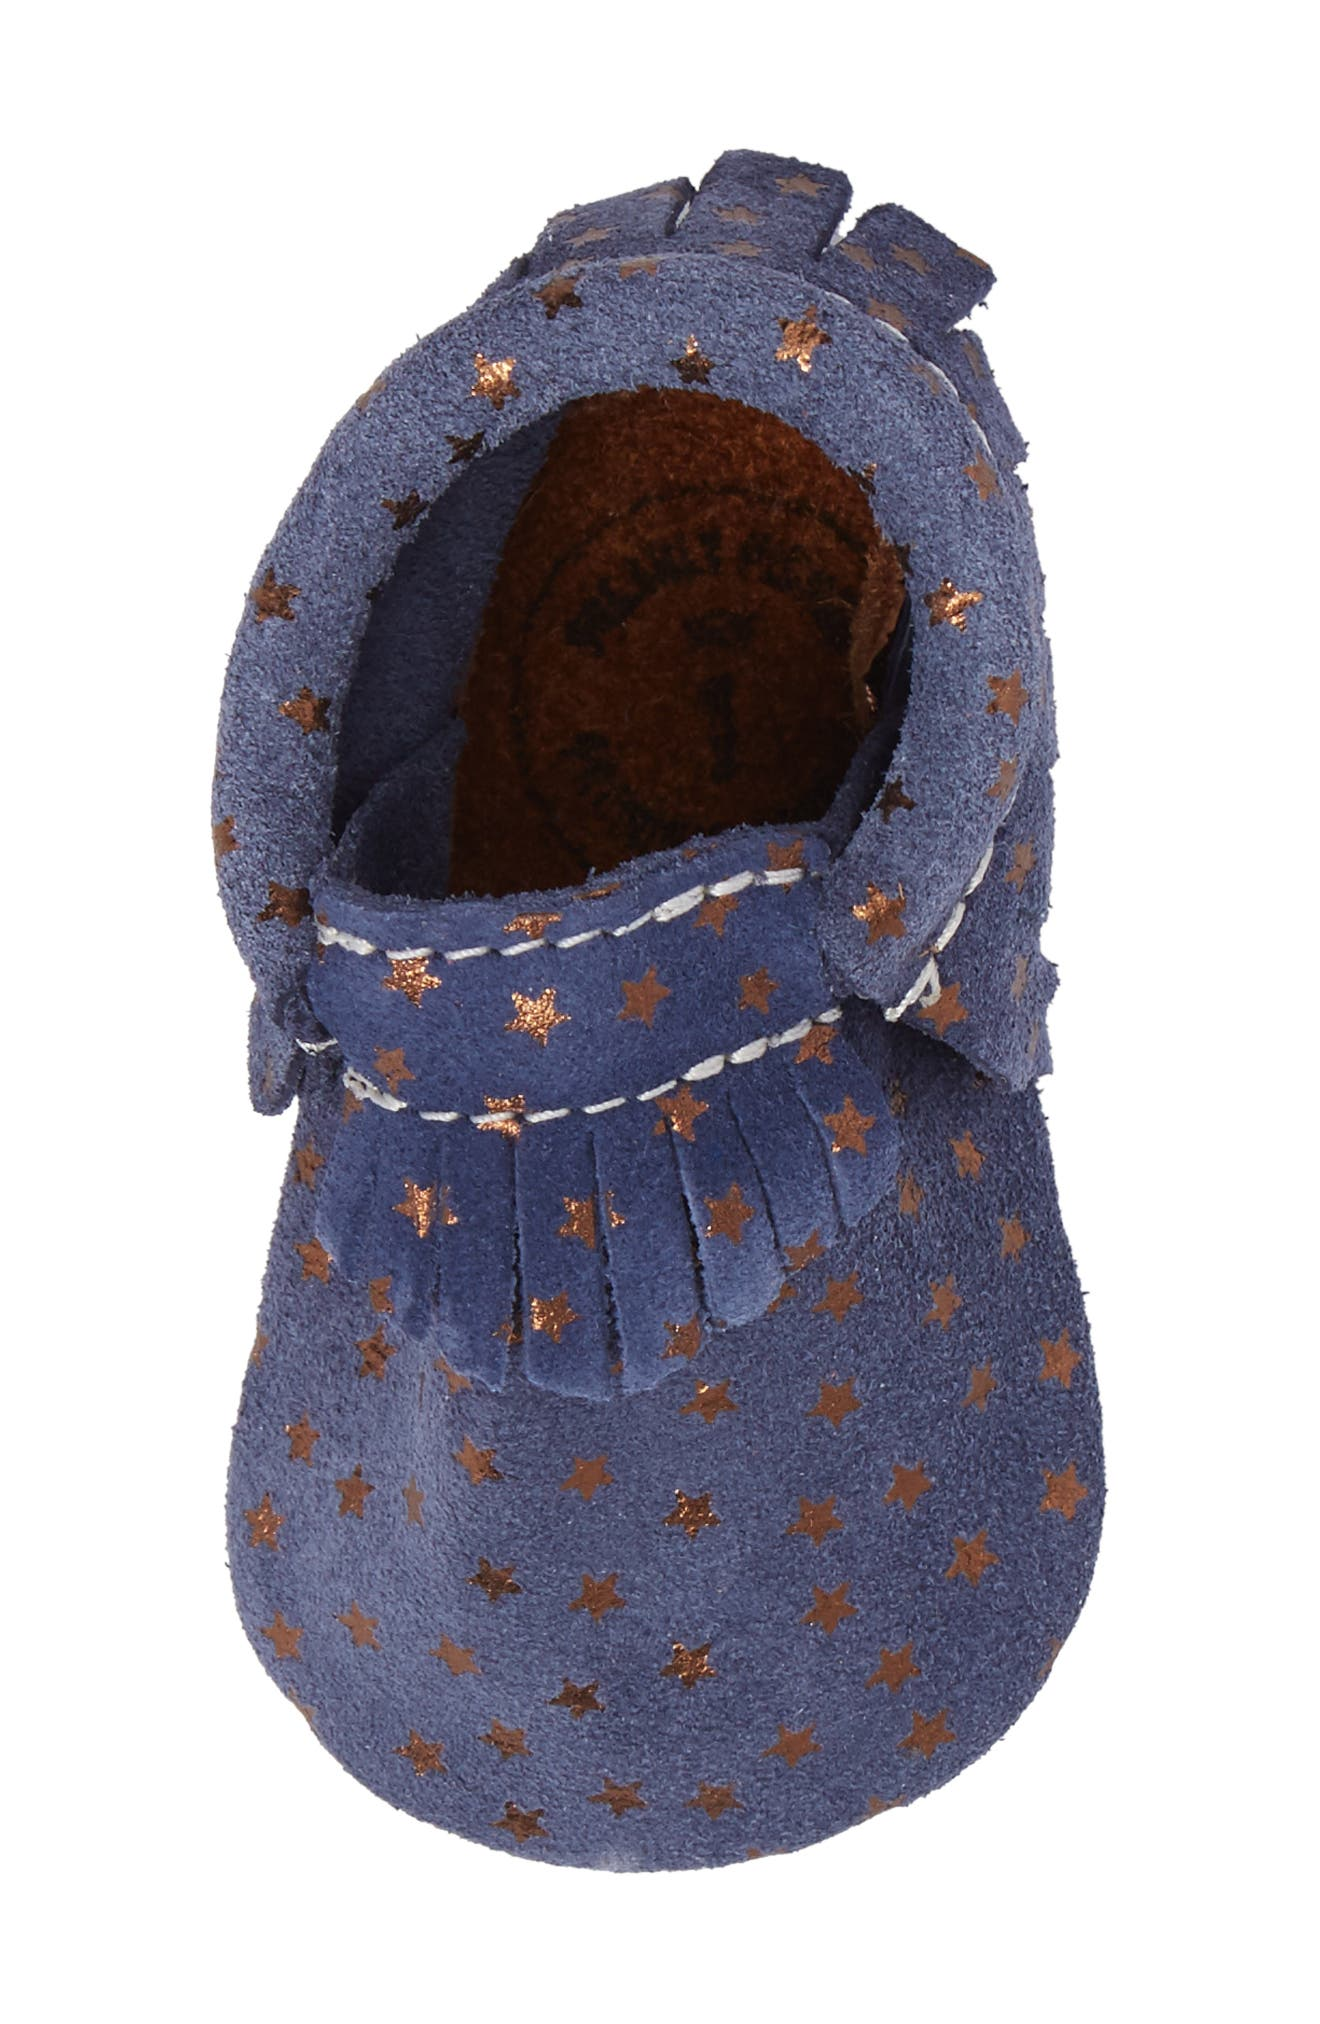 Starry Sky Moccasin,                             Alternate thumbnail 5, color,                             400